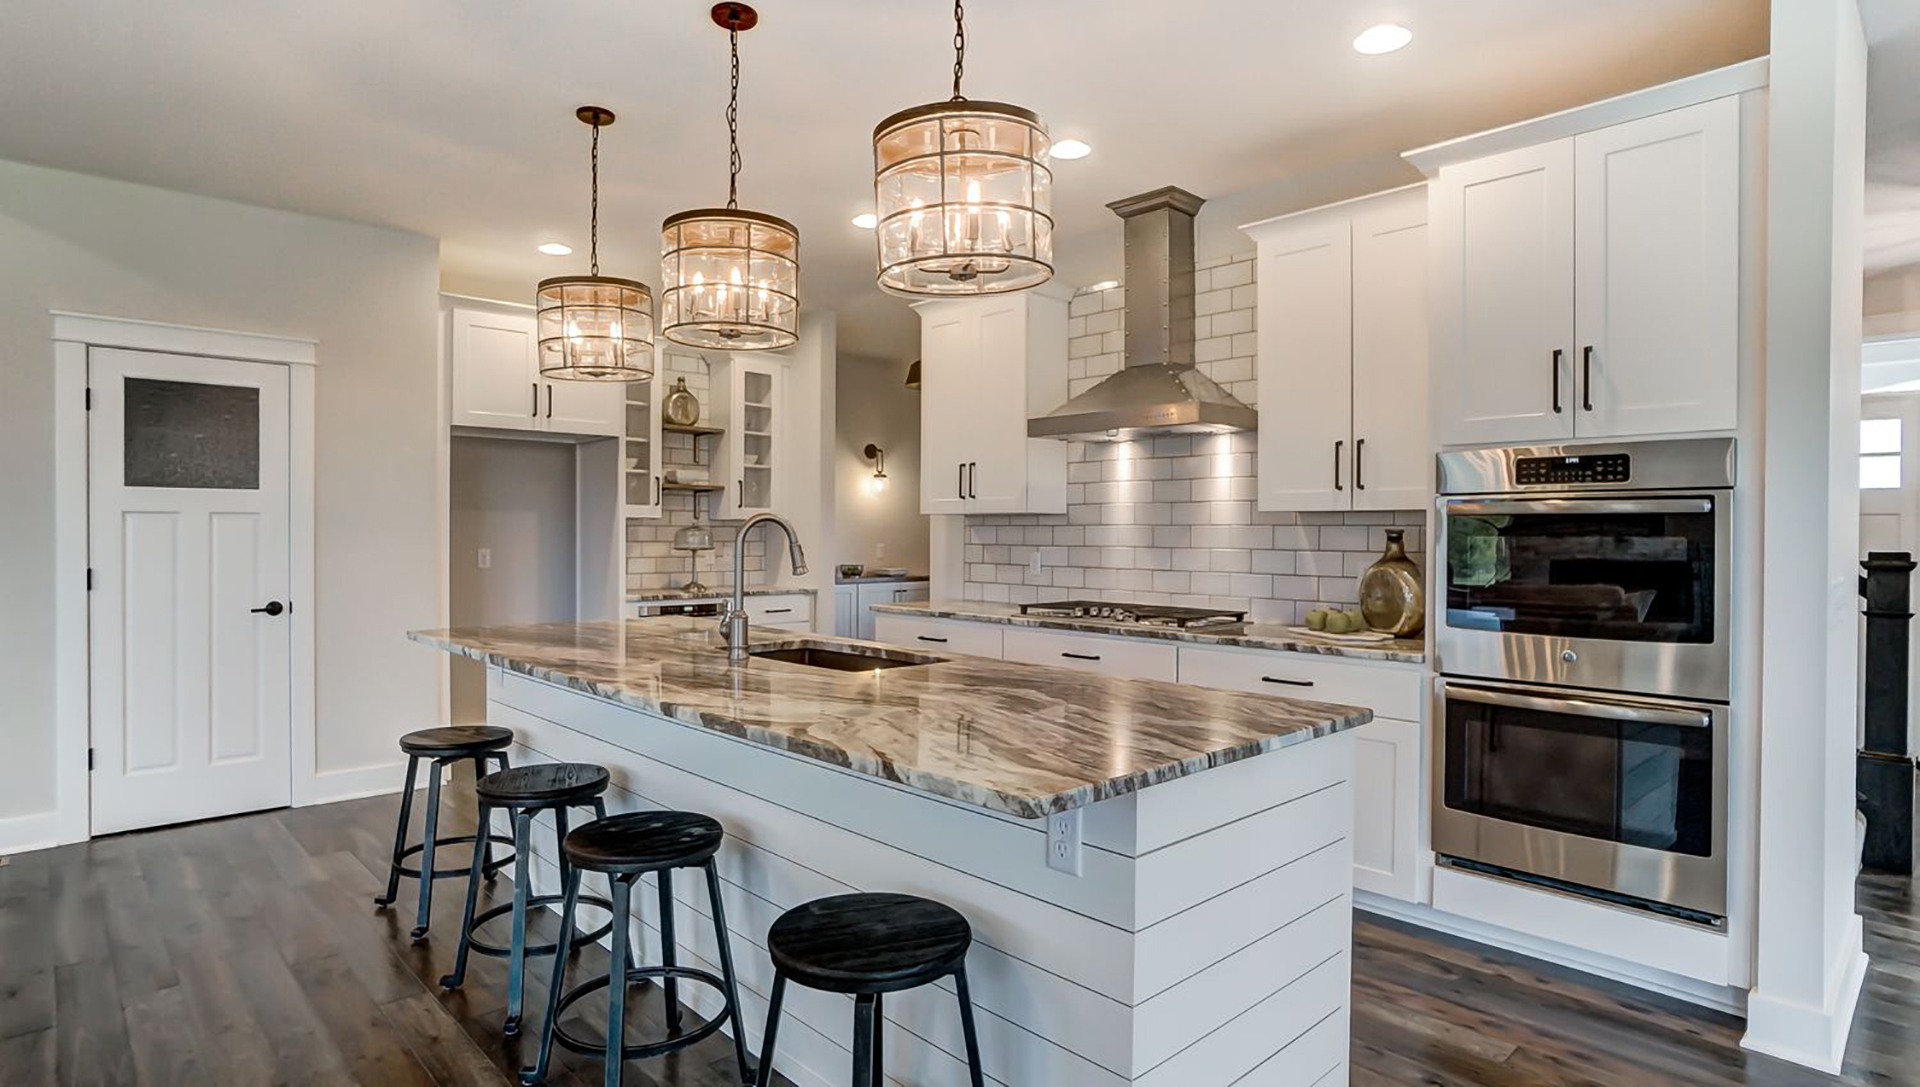 Custom kitchen design Dayton, Ohio